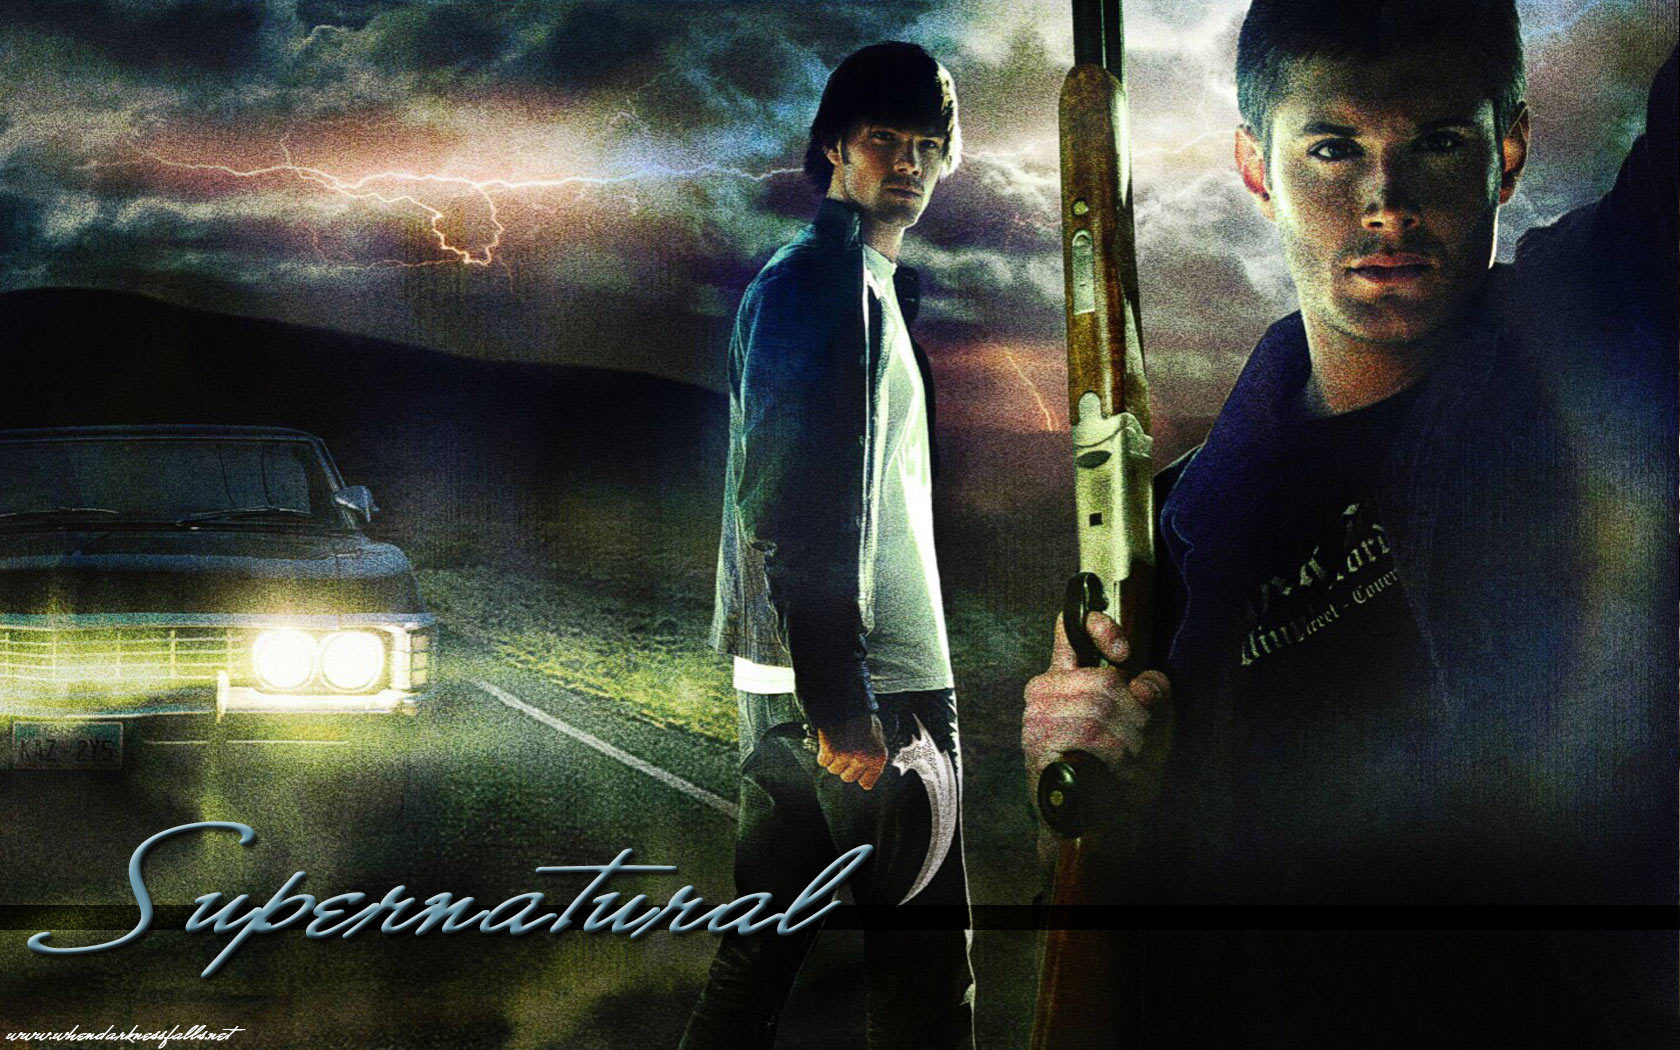 Supernatural Wallpapers - Supernatural Wallpaper (1026919 ...